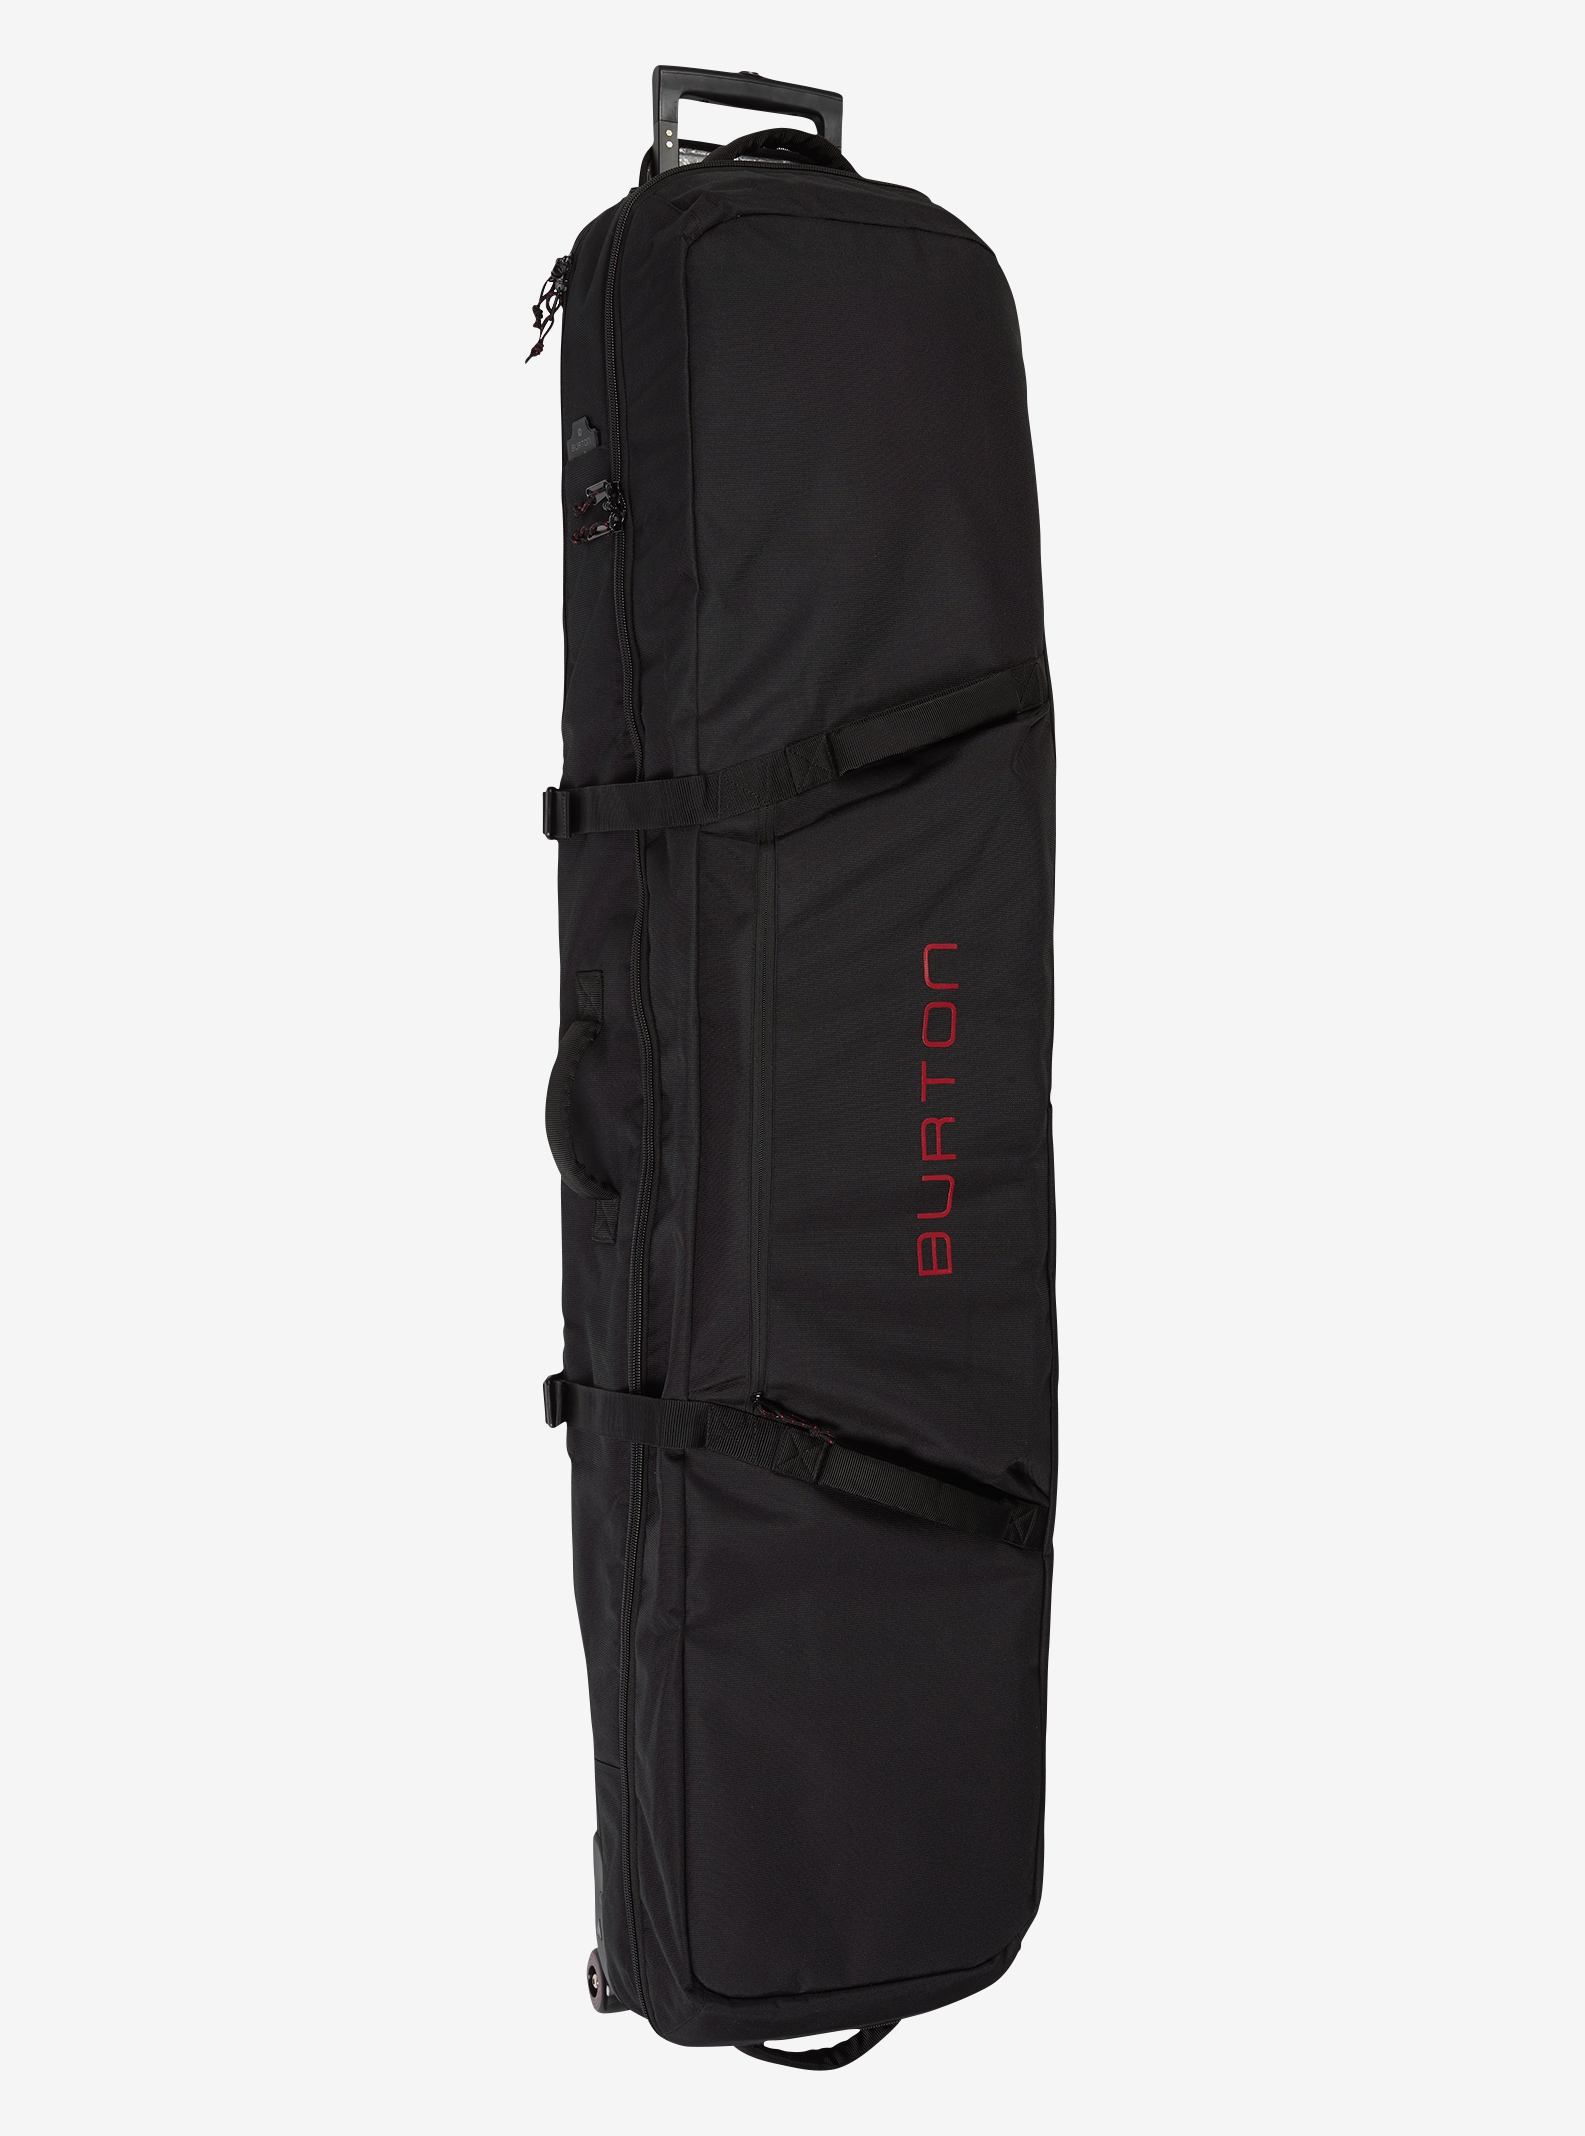 Burton Wheelie Locker shown in True Black